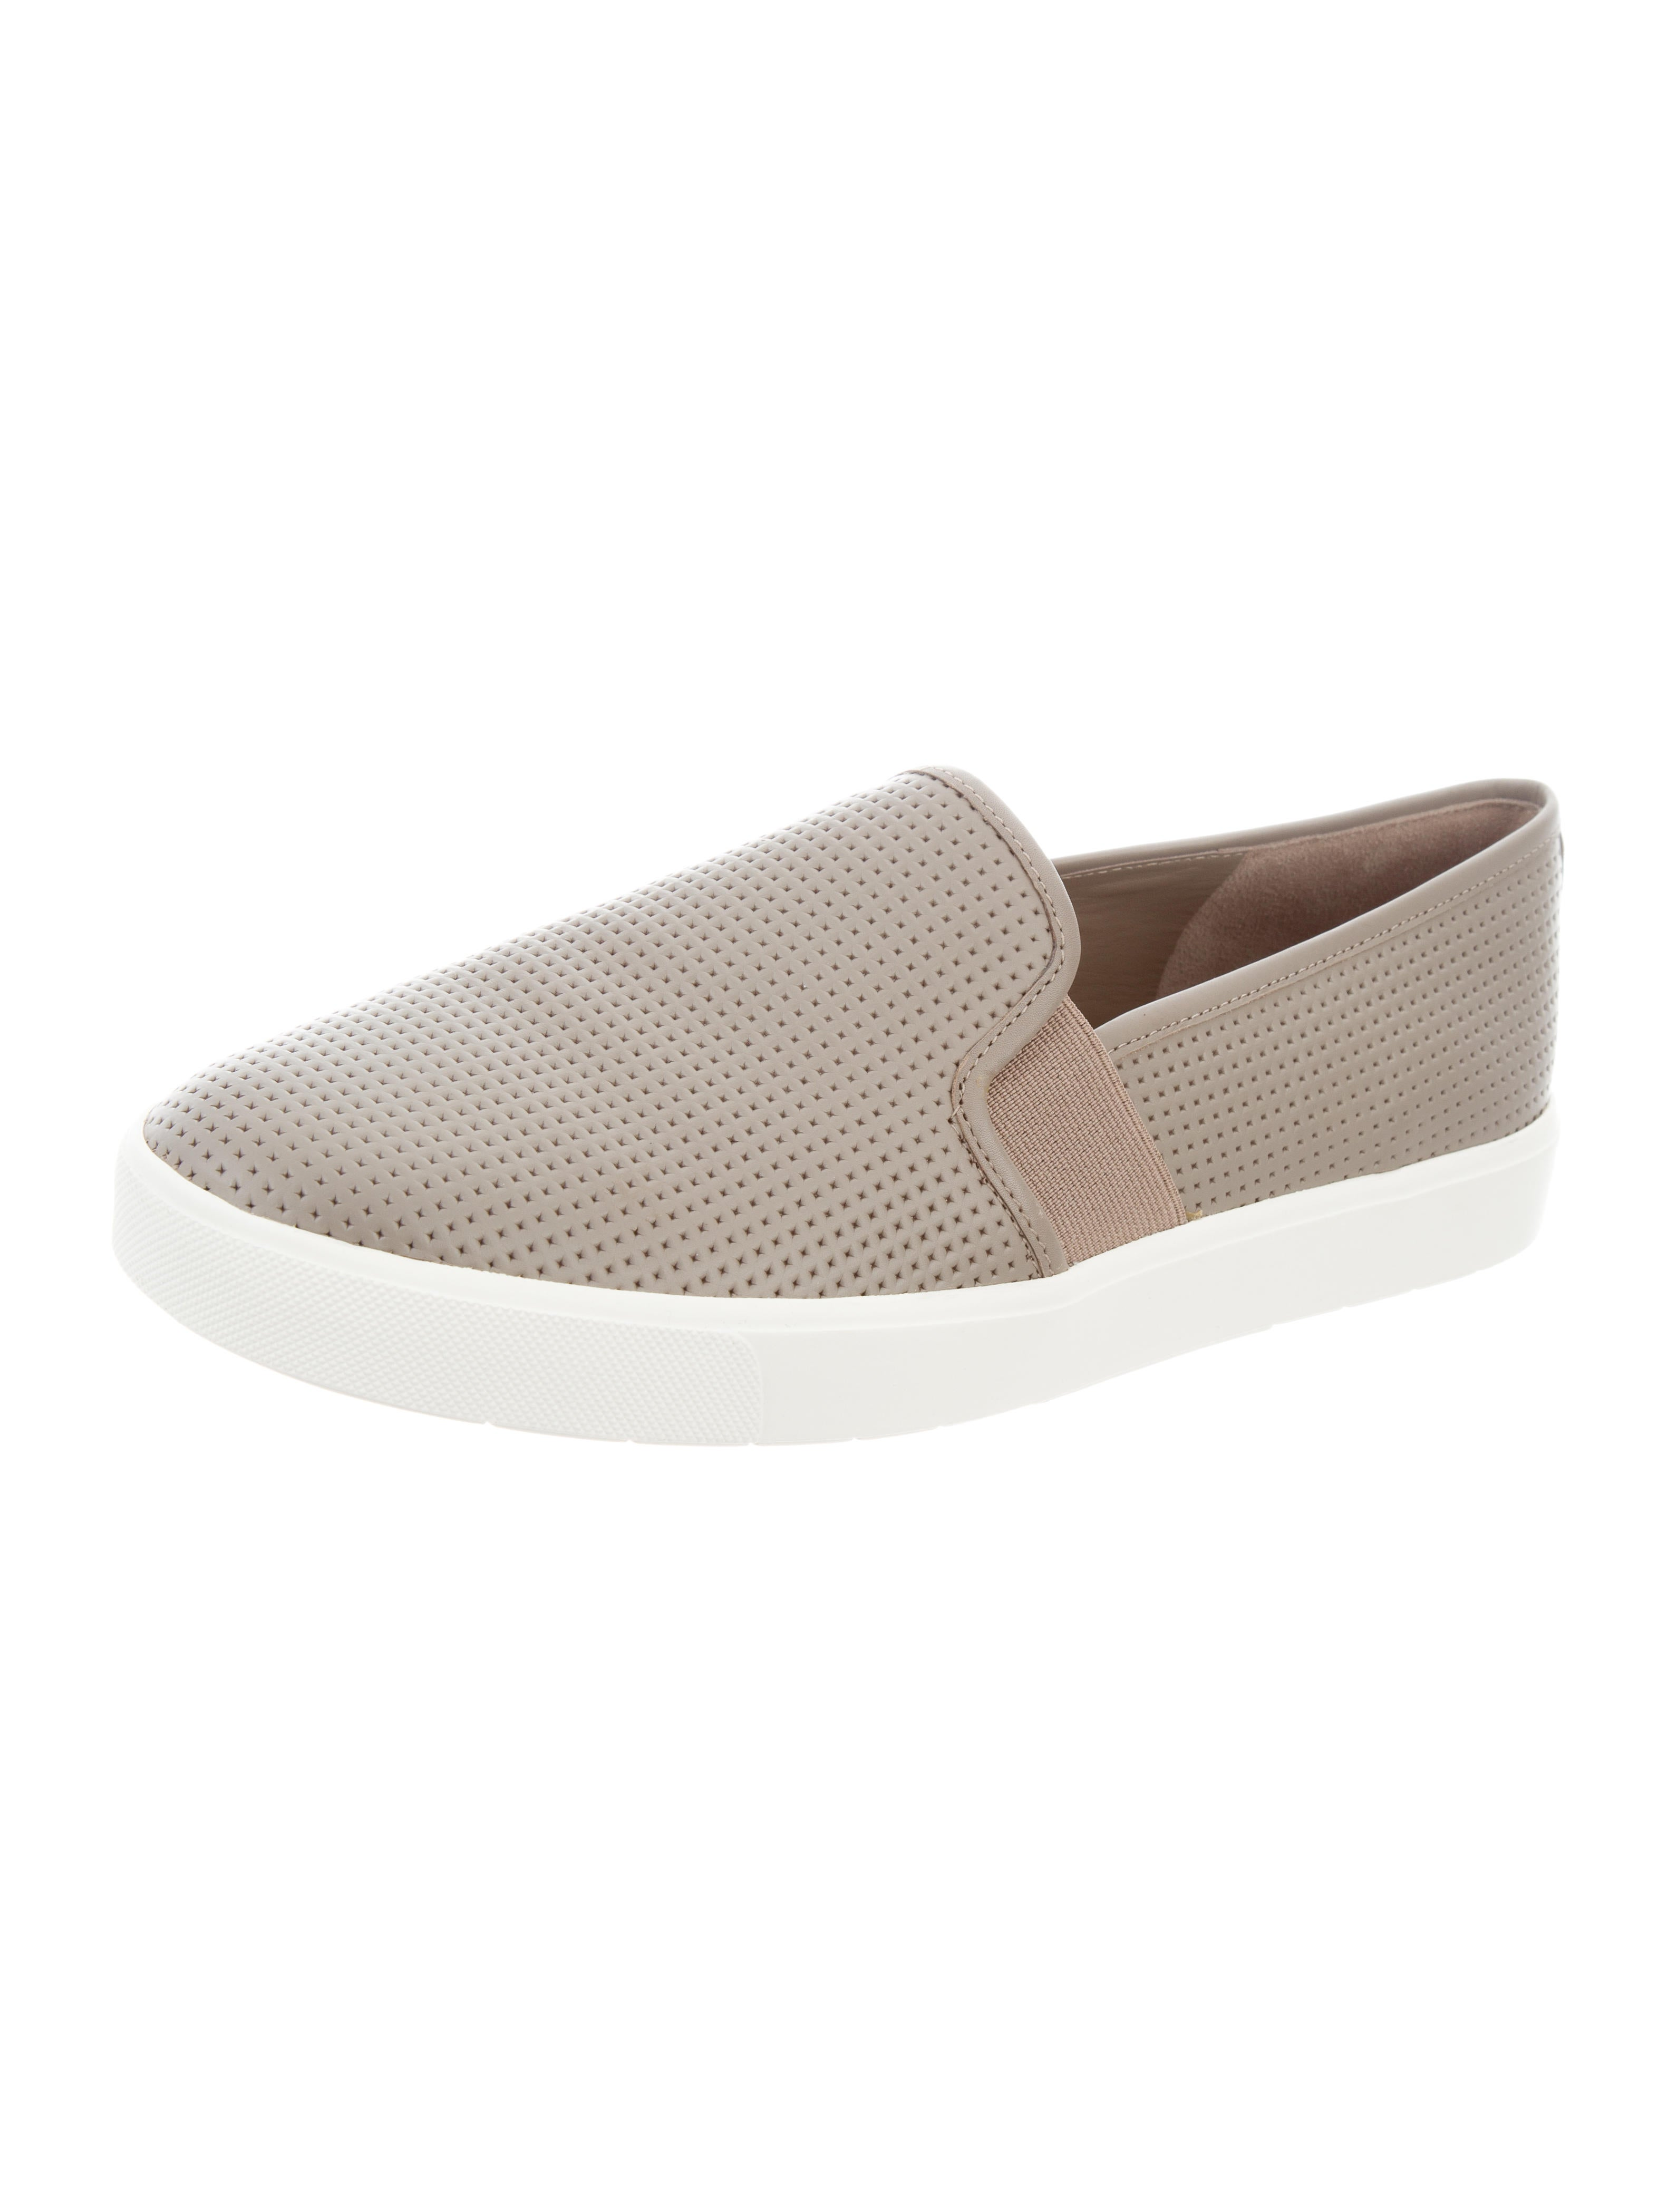 outlet official Vince Blair Slip-On Sneakers w/ Tags 2015 new free shipping perfect footaction sale online ra73O8ymm